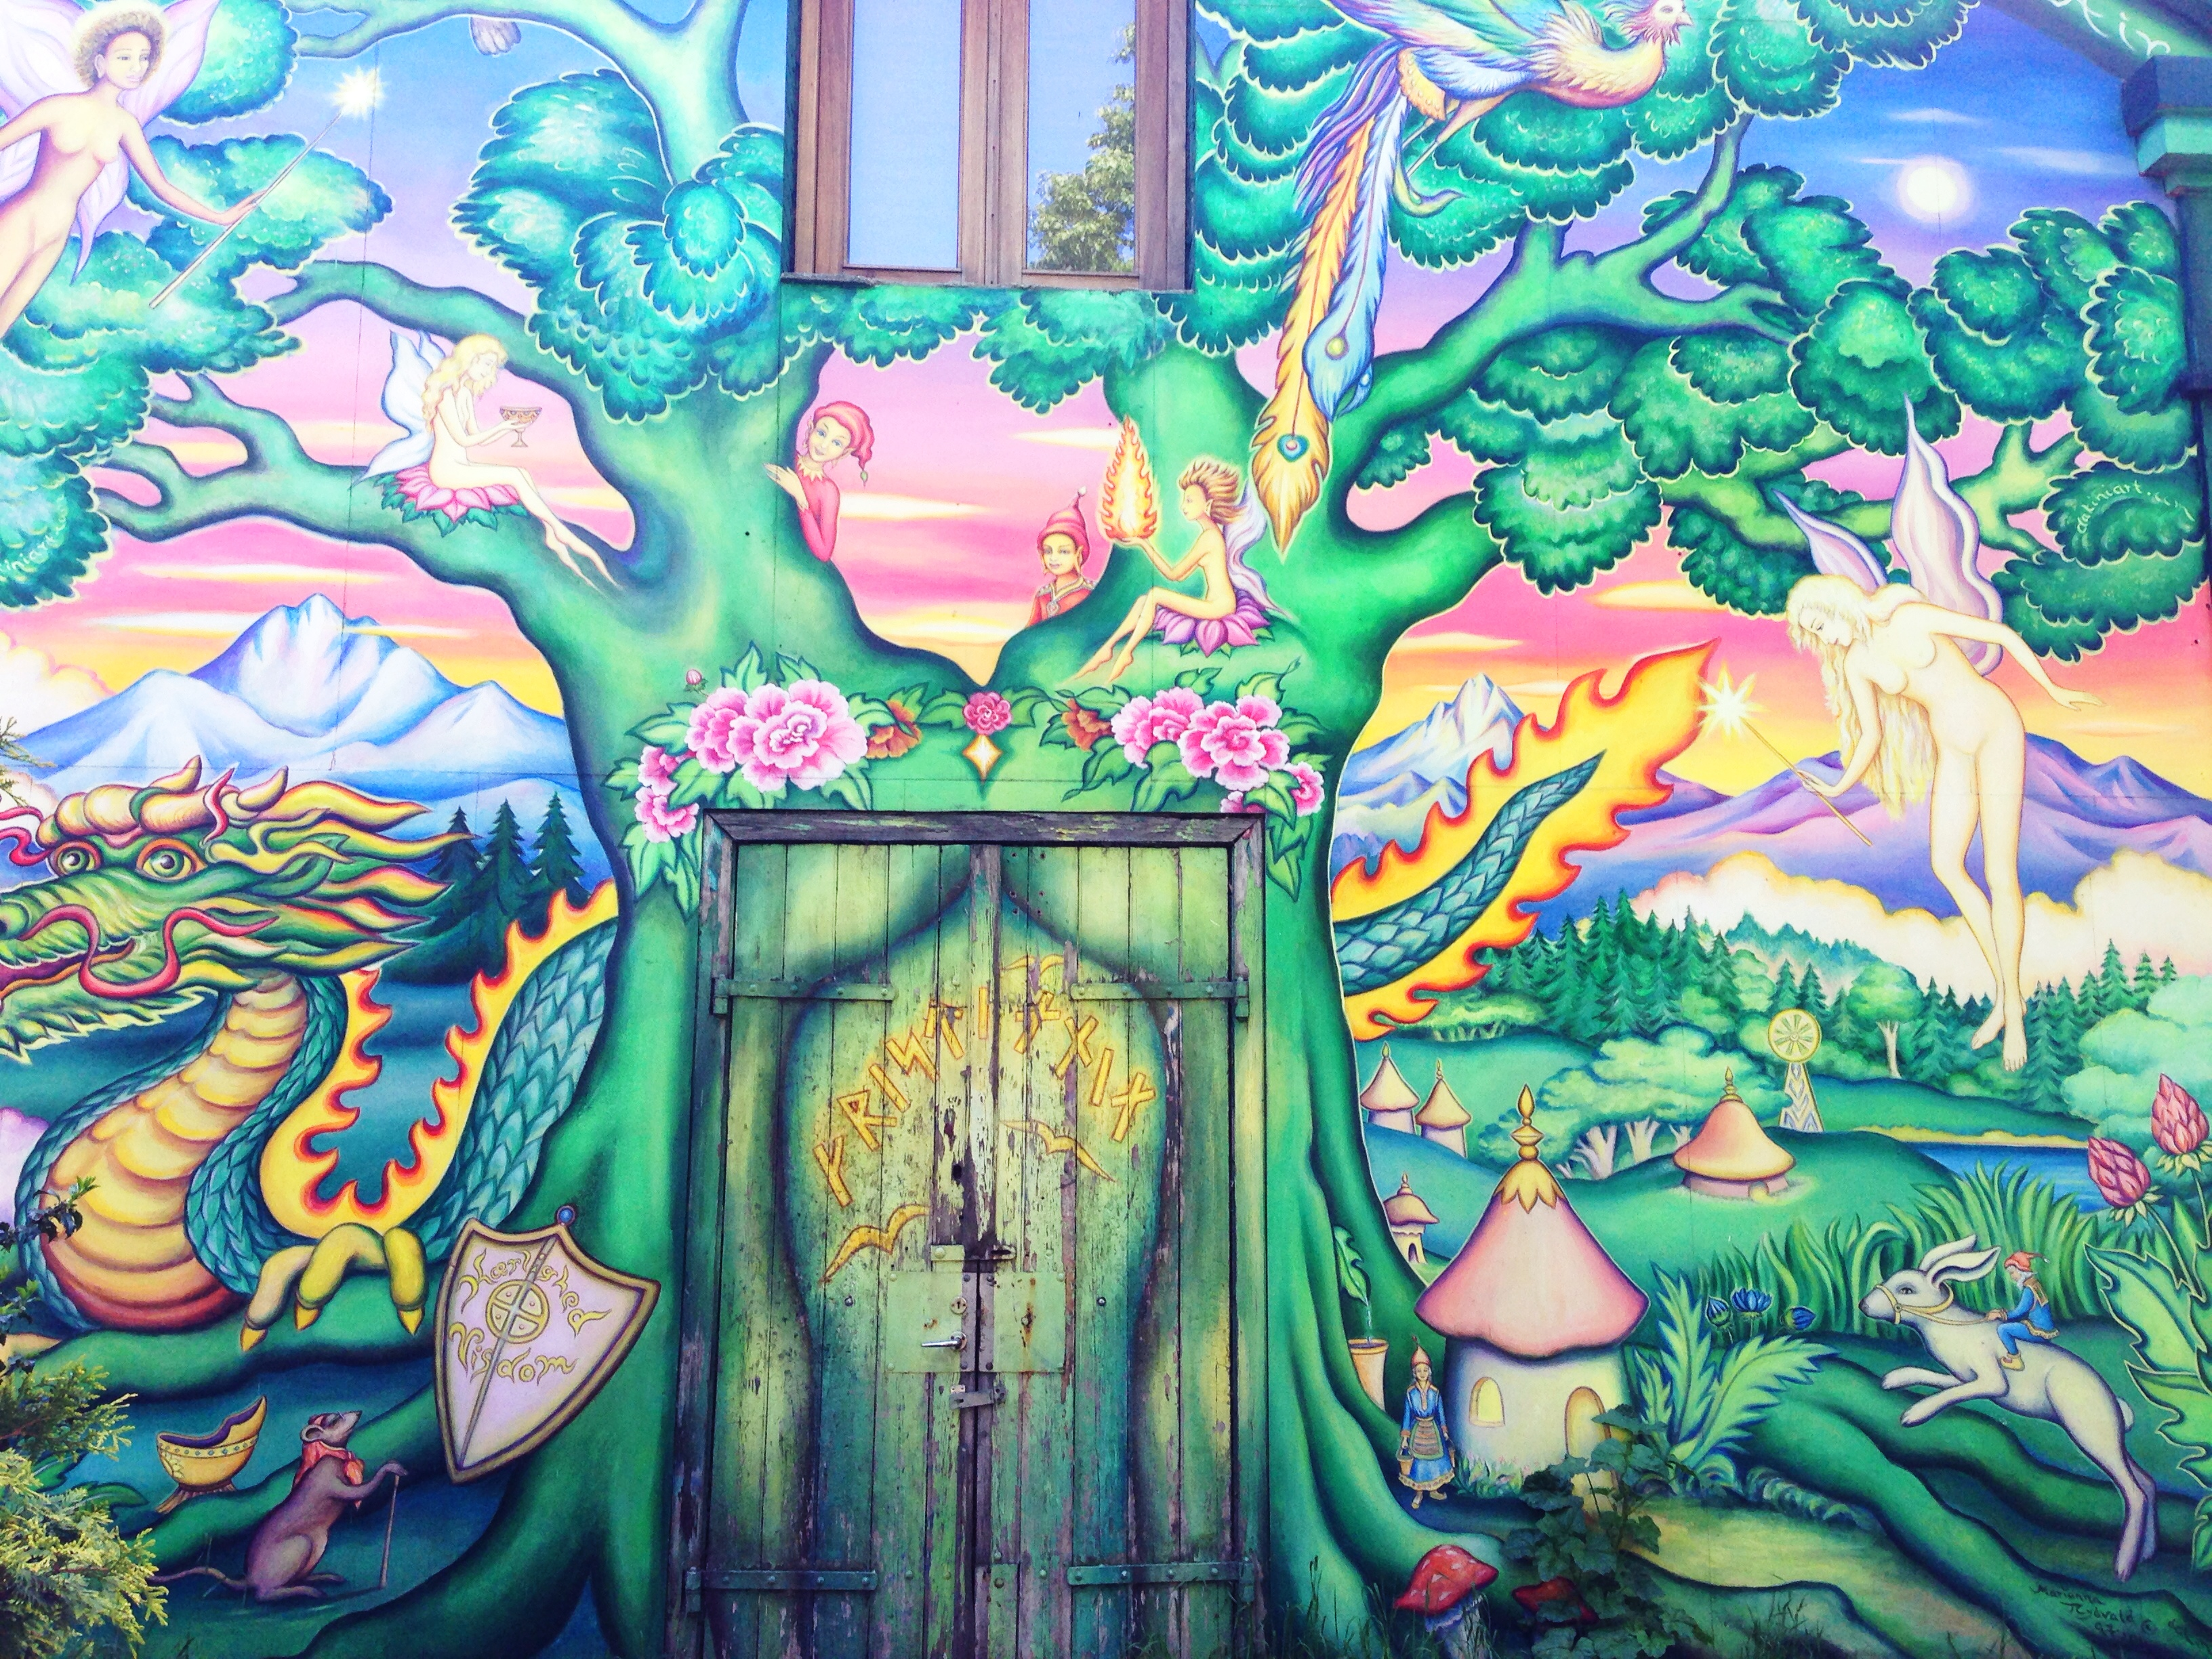 christiania wall mural